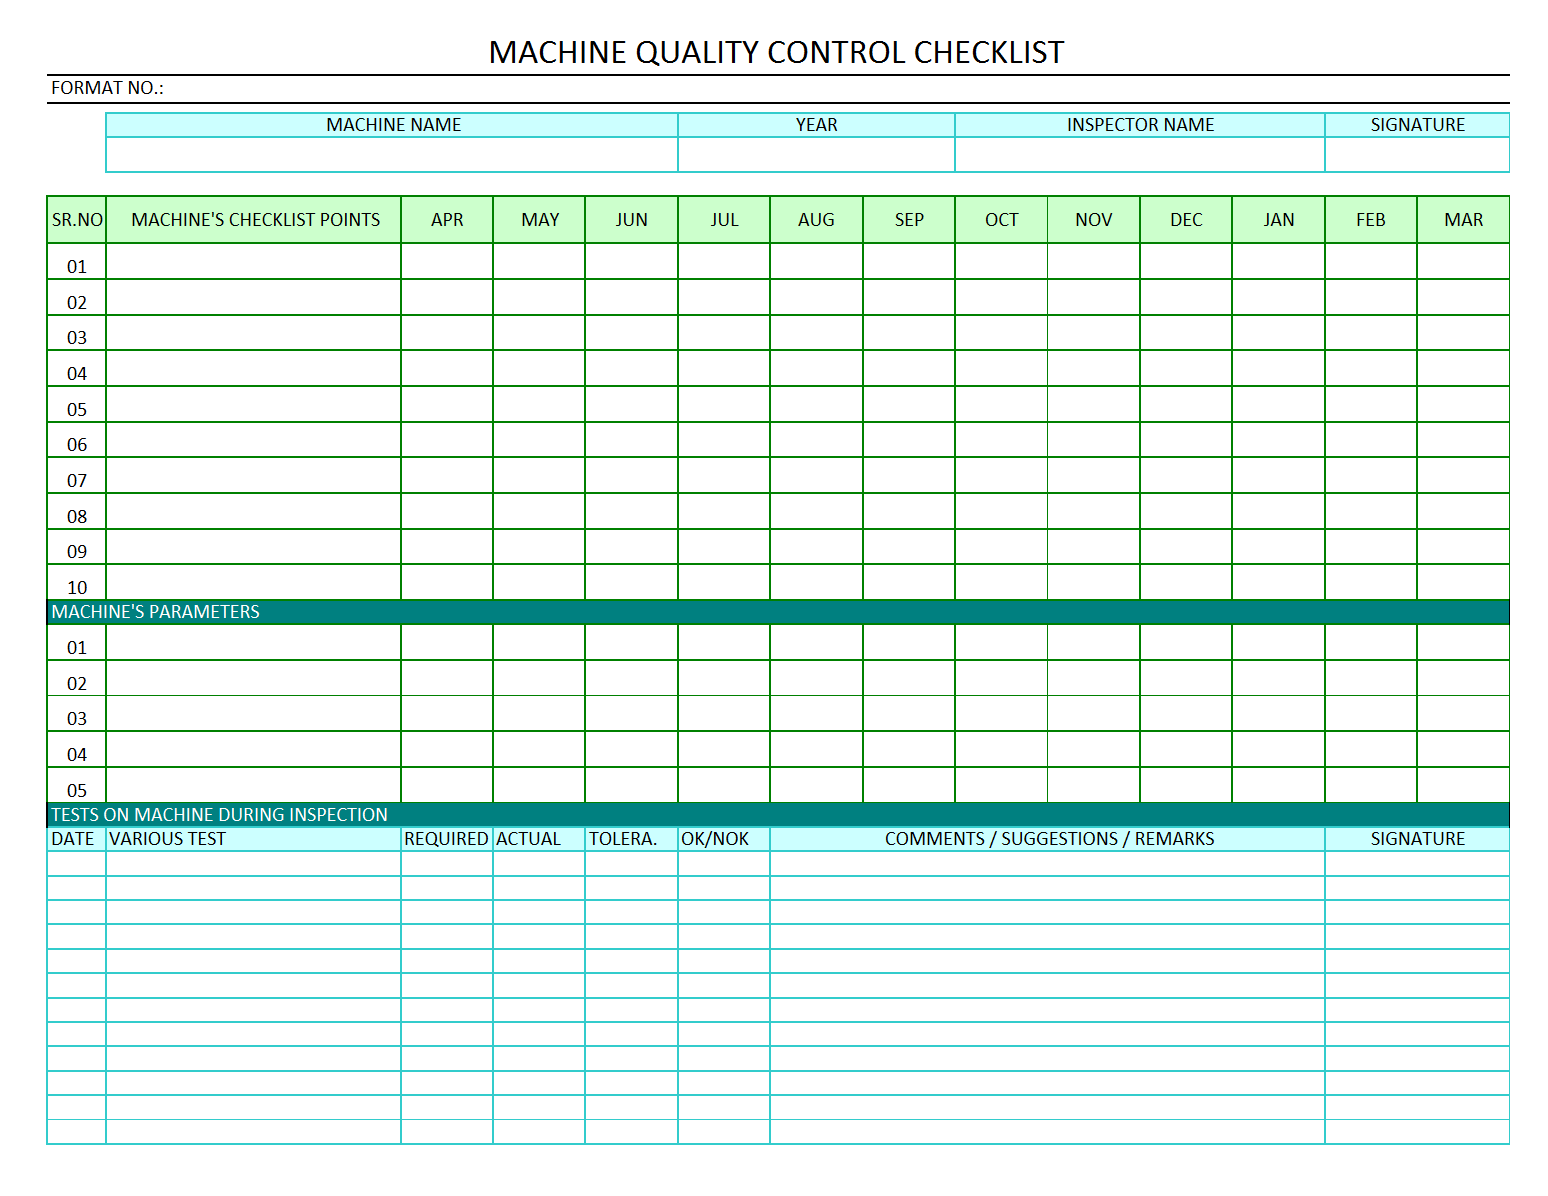 Machine quality control checklist quality audit of machine for Quality control check sheet template